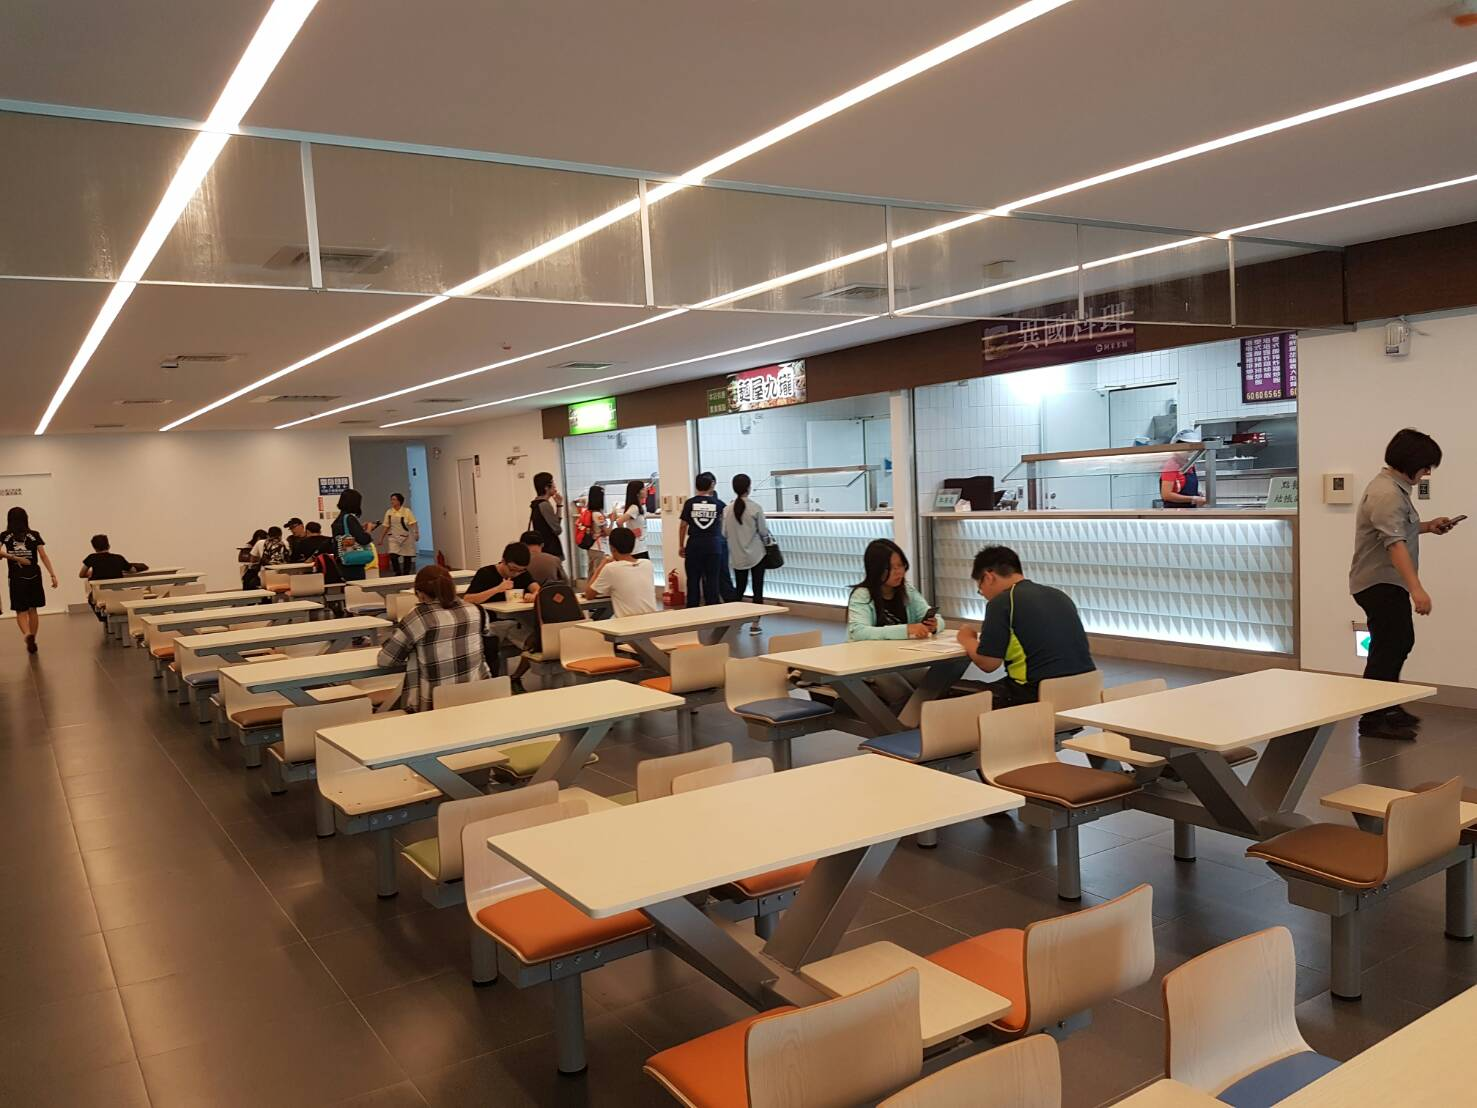 Food Street student restaurant on the 2nd floor of W Building